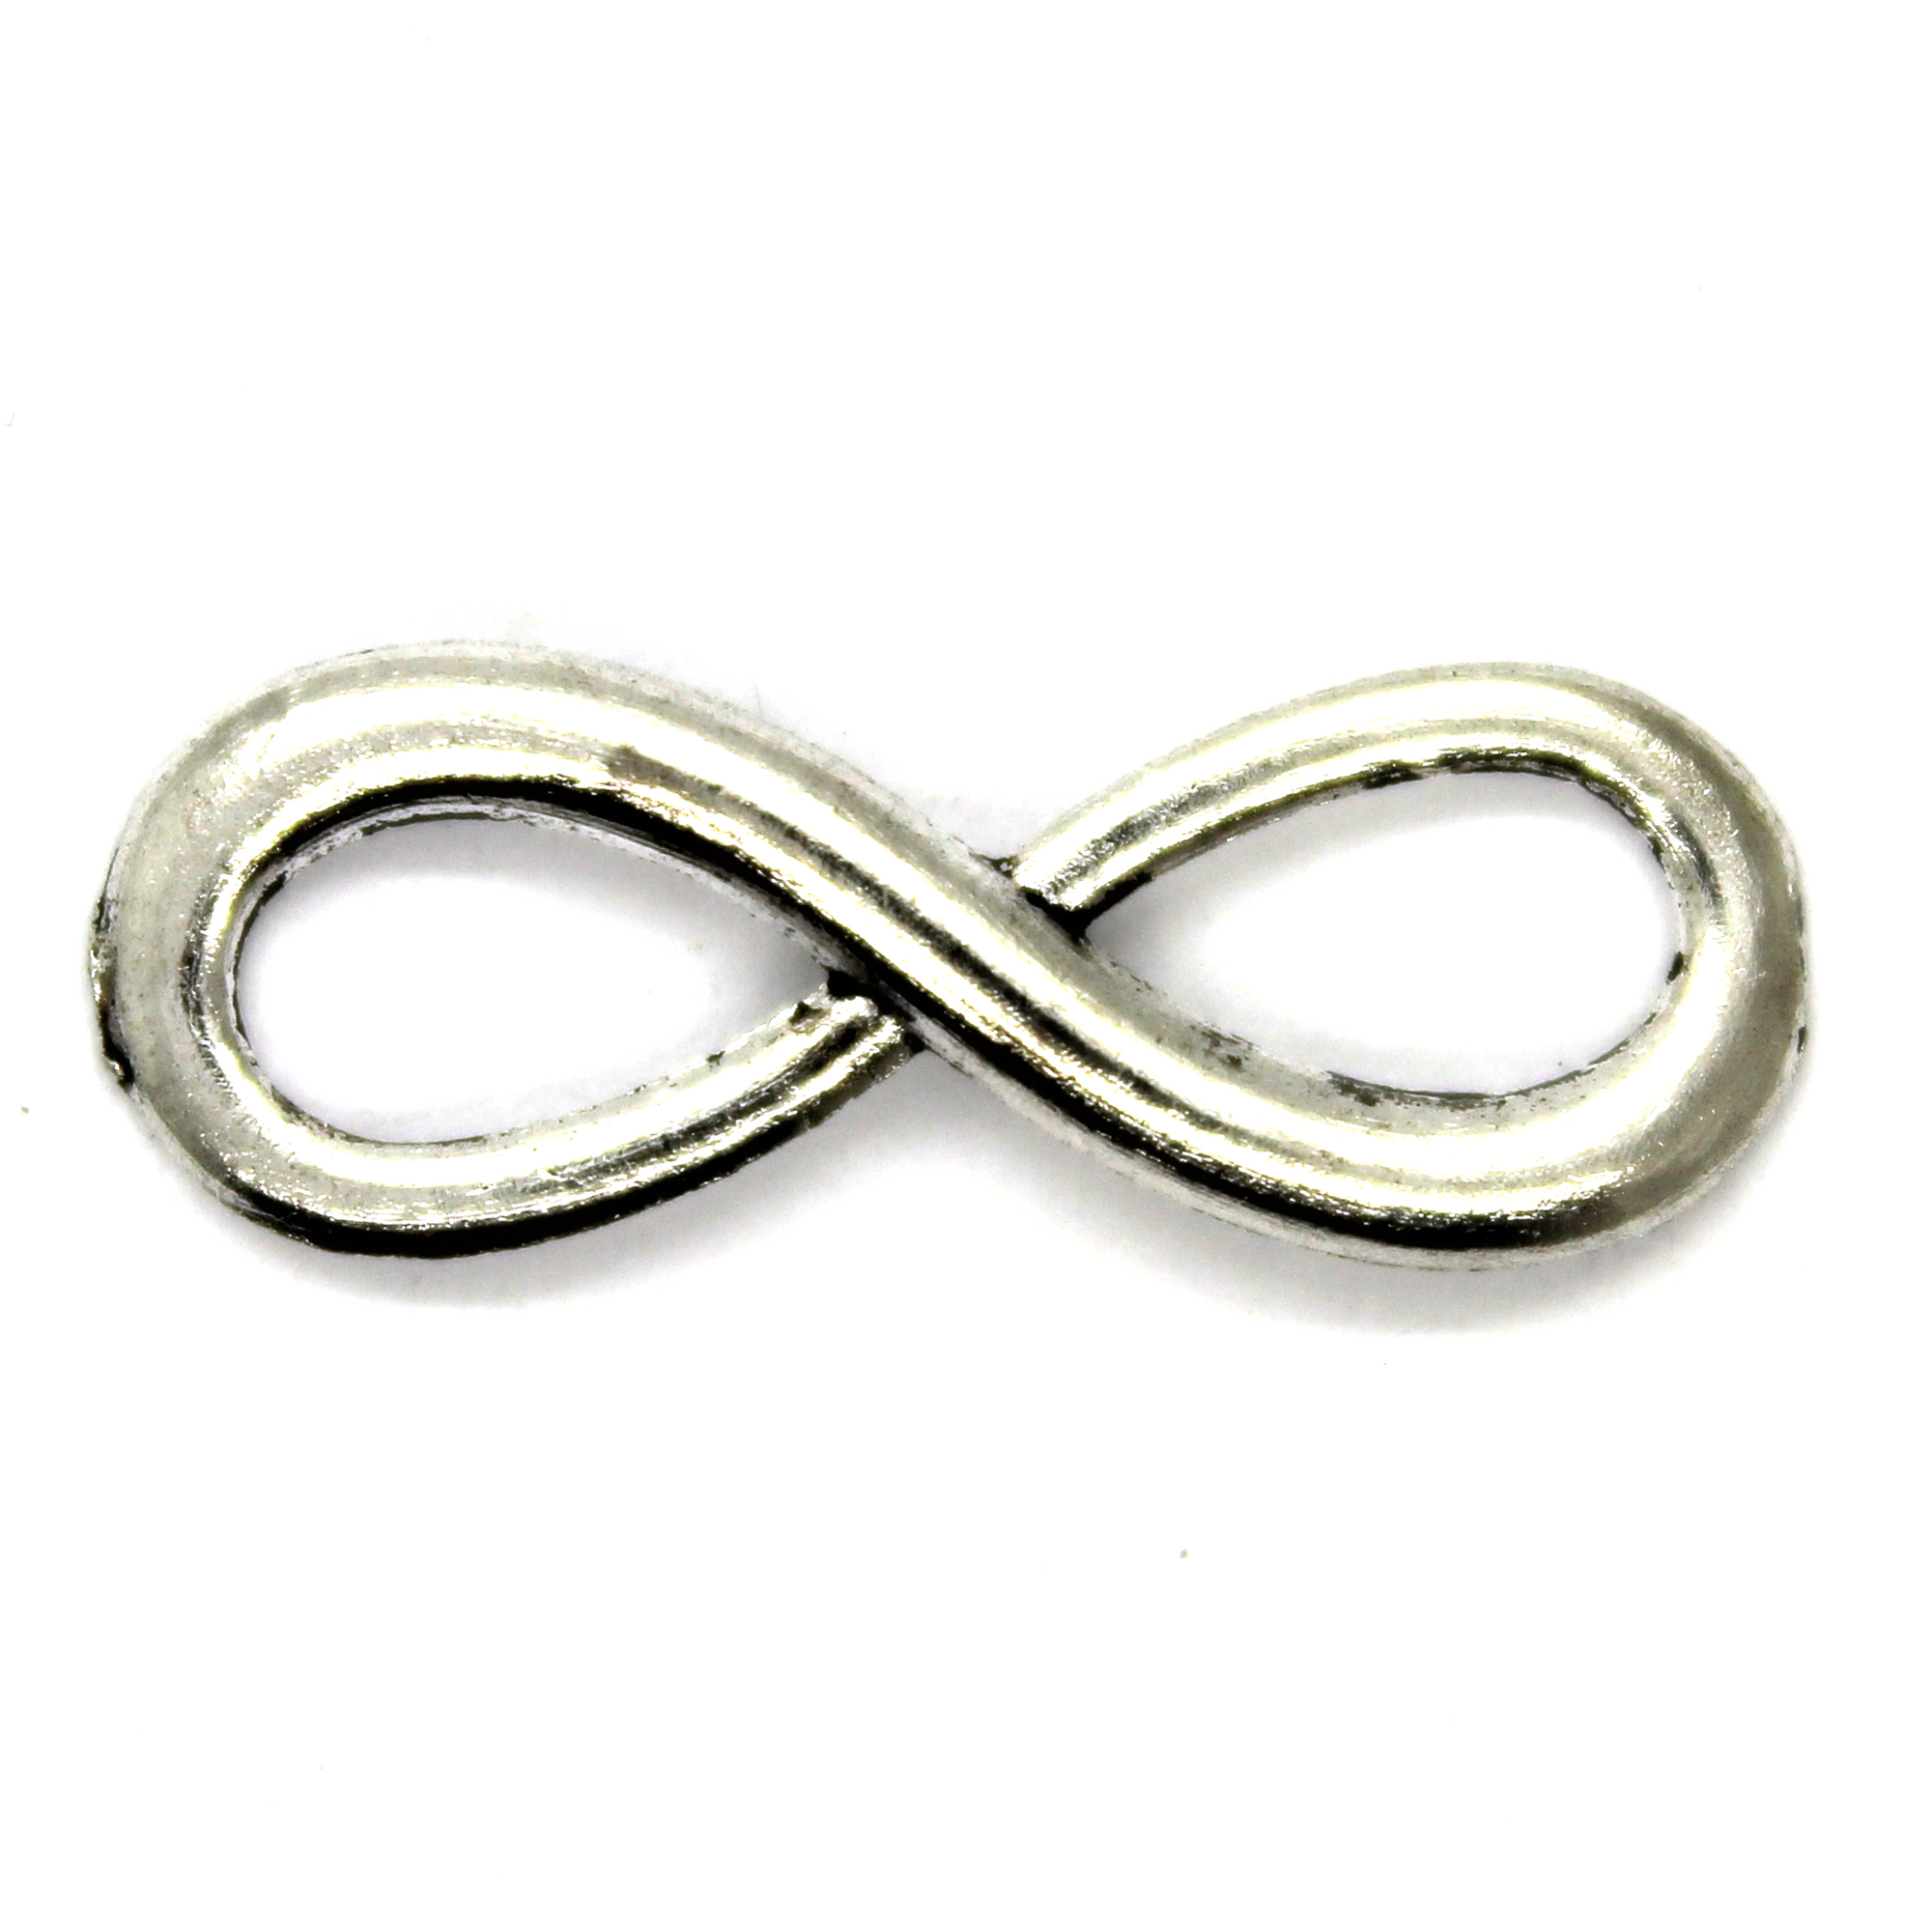 Connector, Curved Infinity, Silver, Alloy, 23mm x 8mm, Sold Per pkg of 6